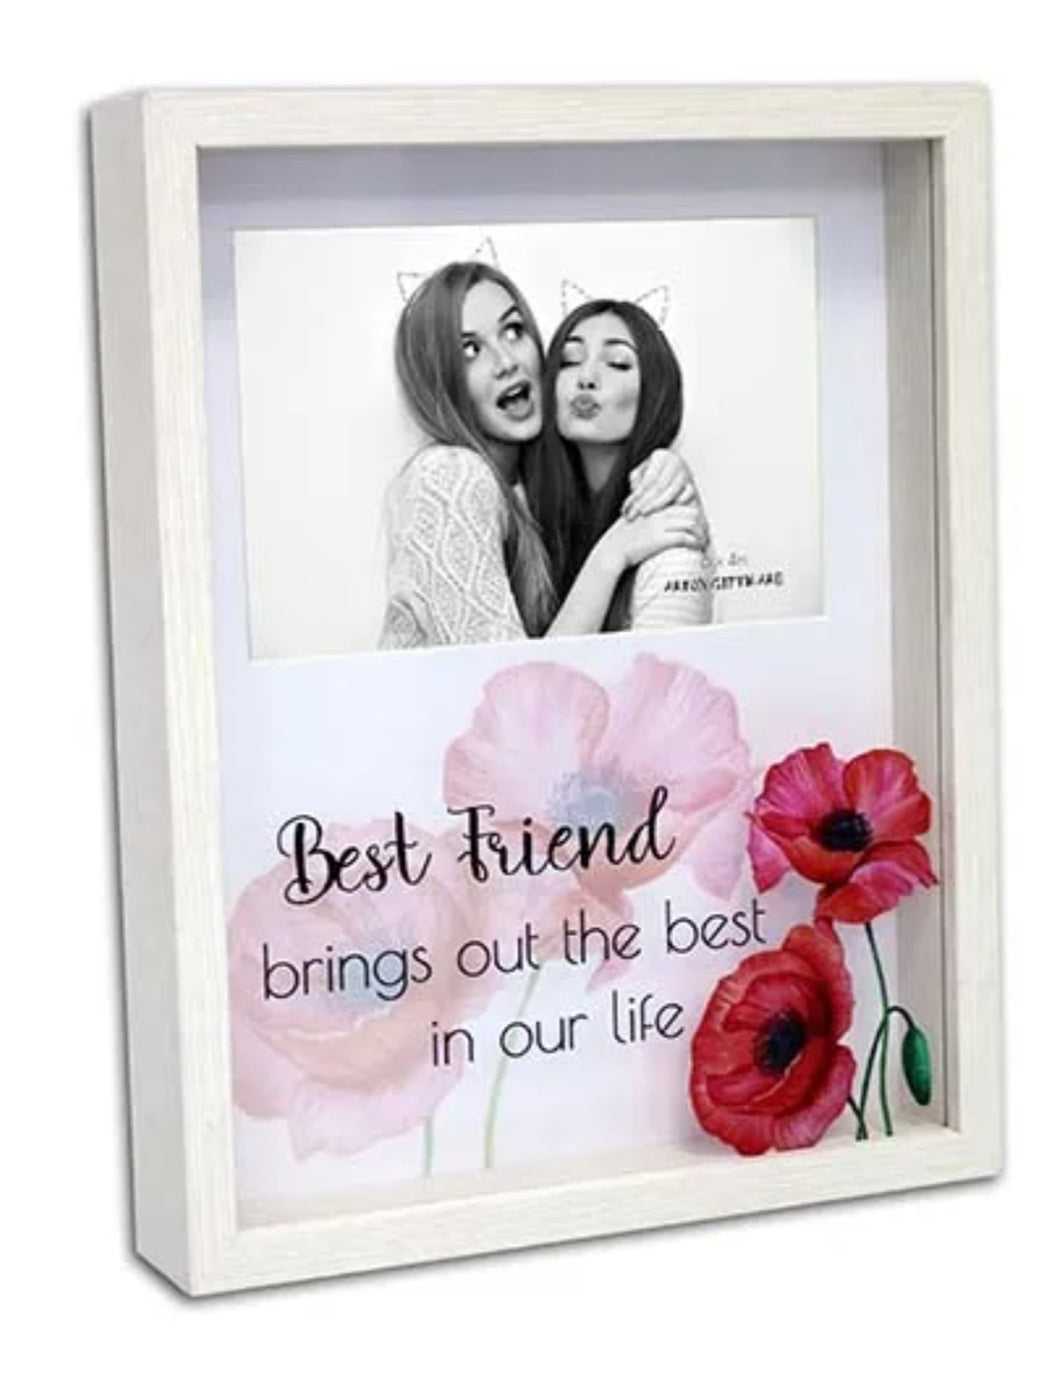 Magic moments photo frame 6x4 best friend-Gift a Little gift shop